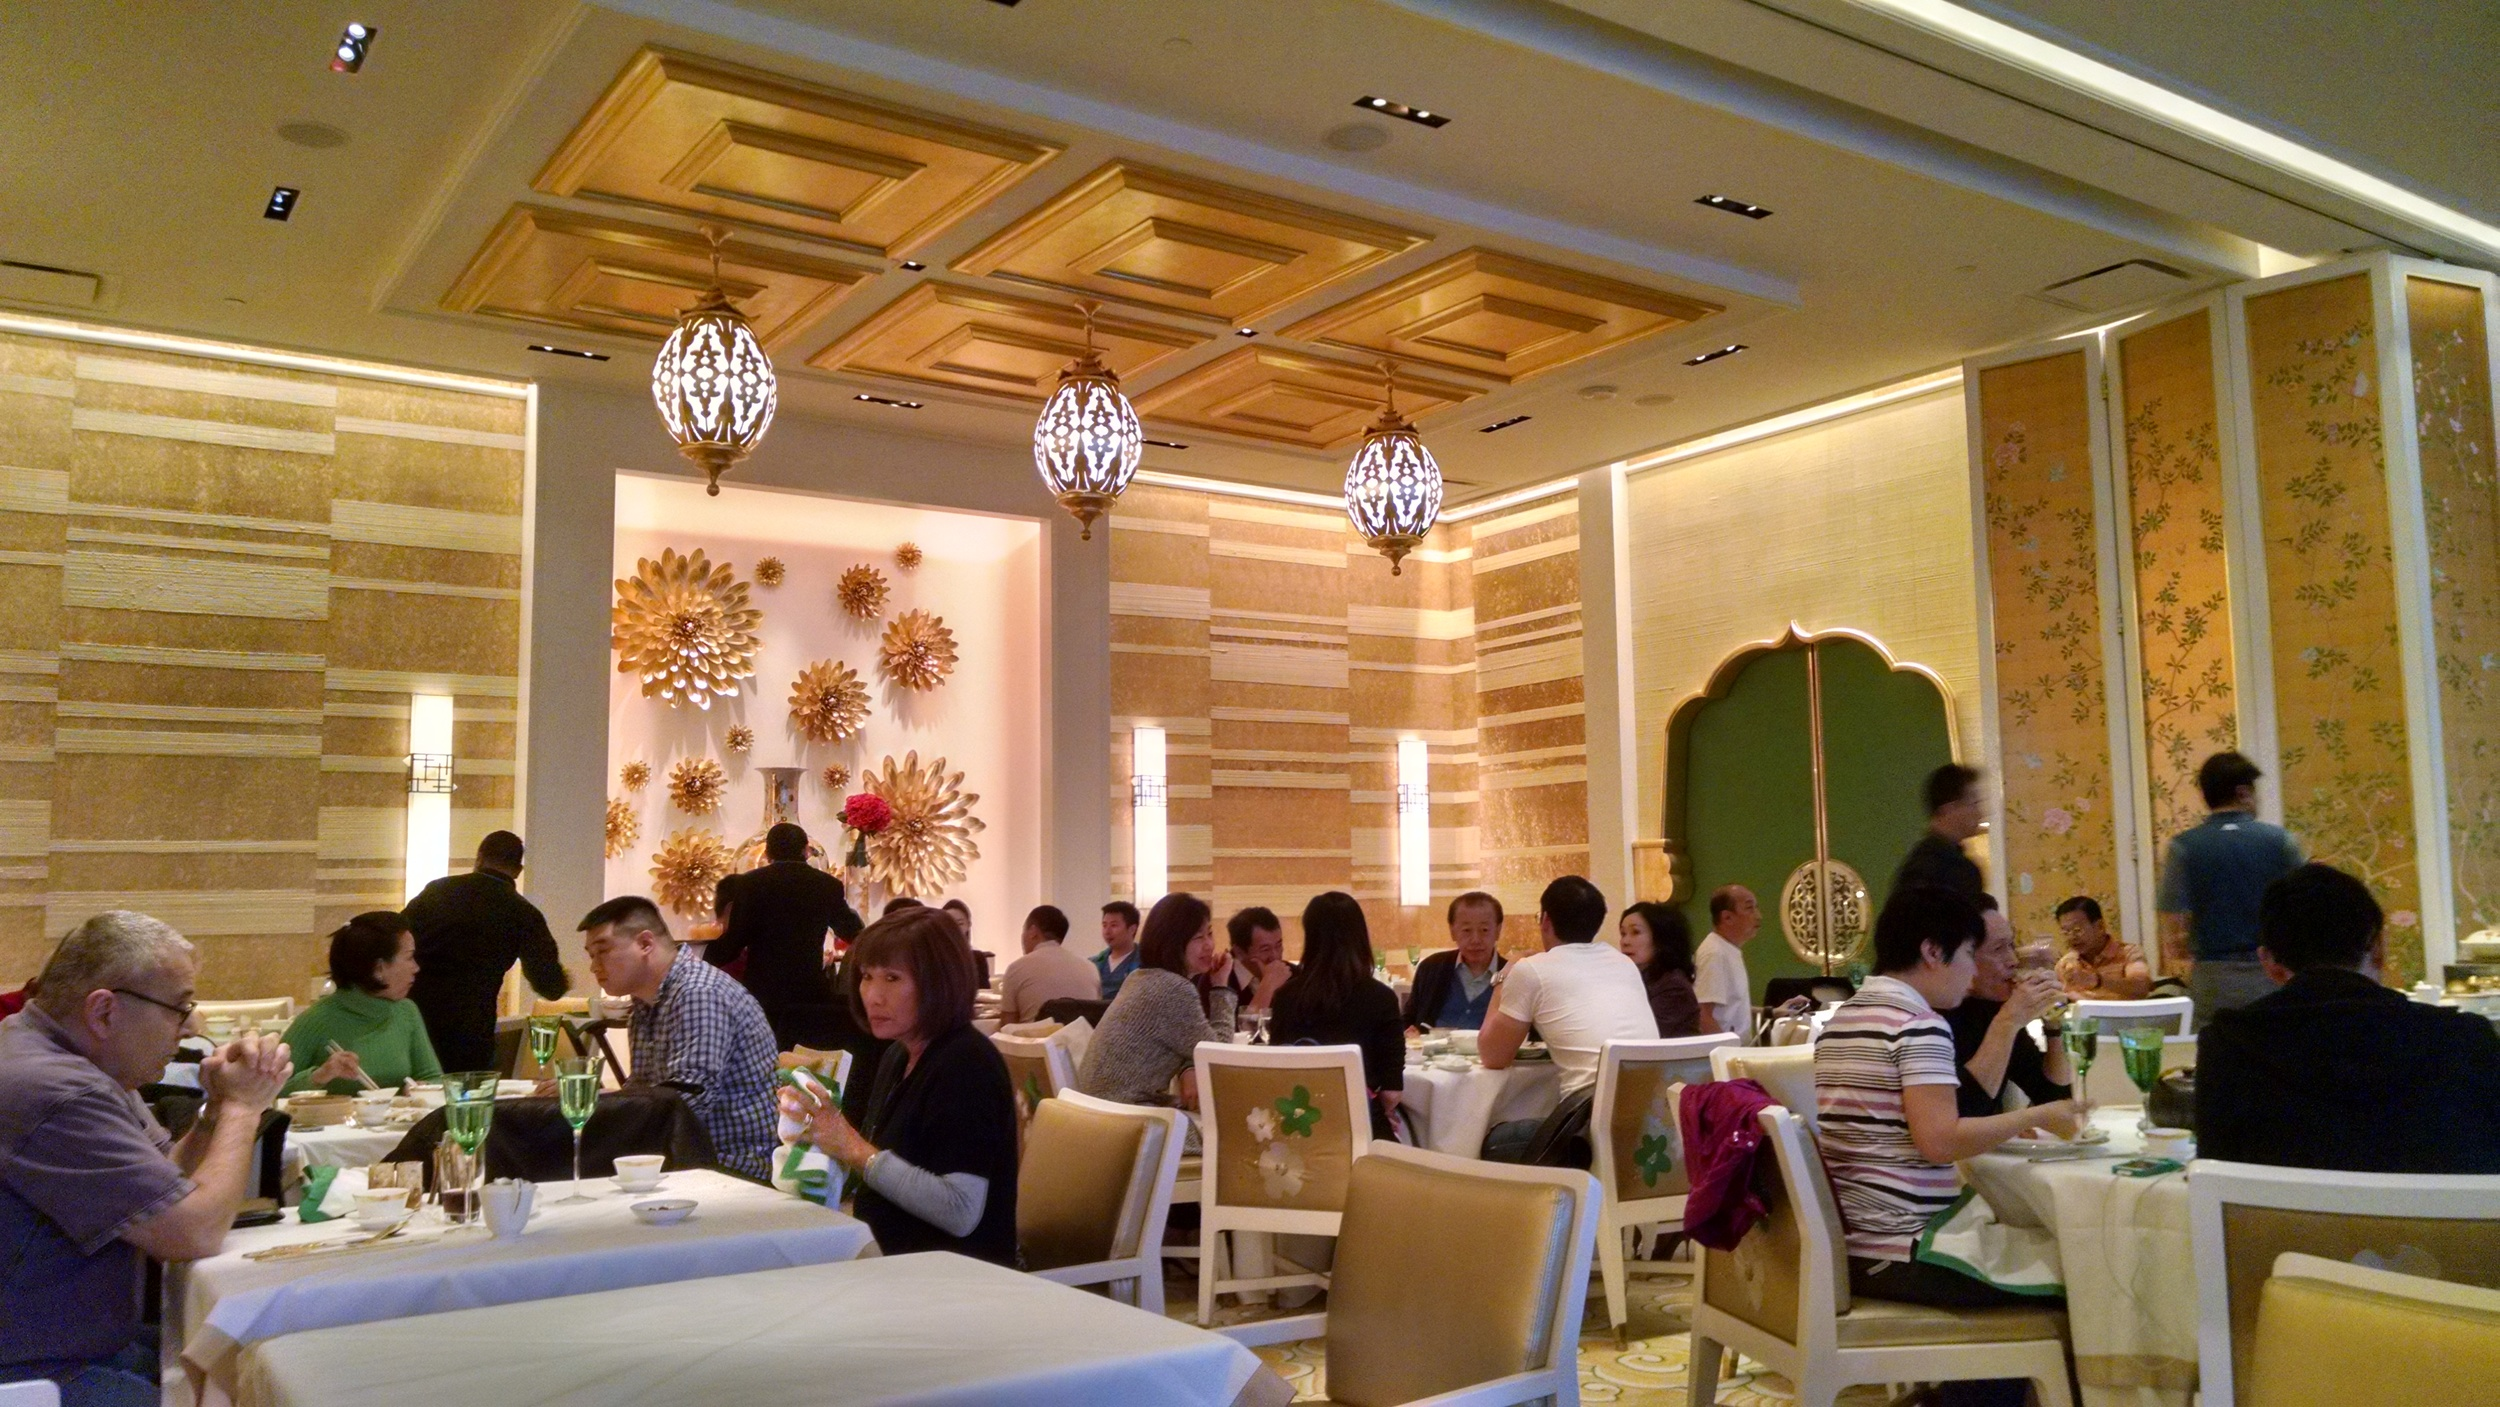 Wing Lei restaurant is beautiful and overflowing with the colors of gold and jade.